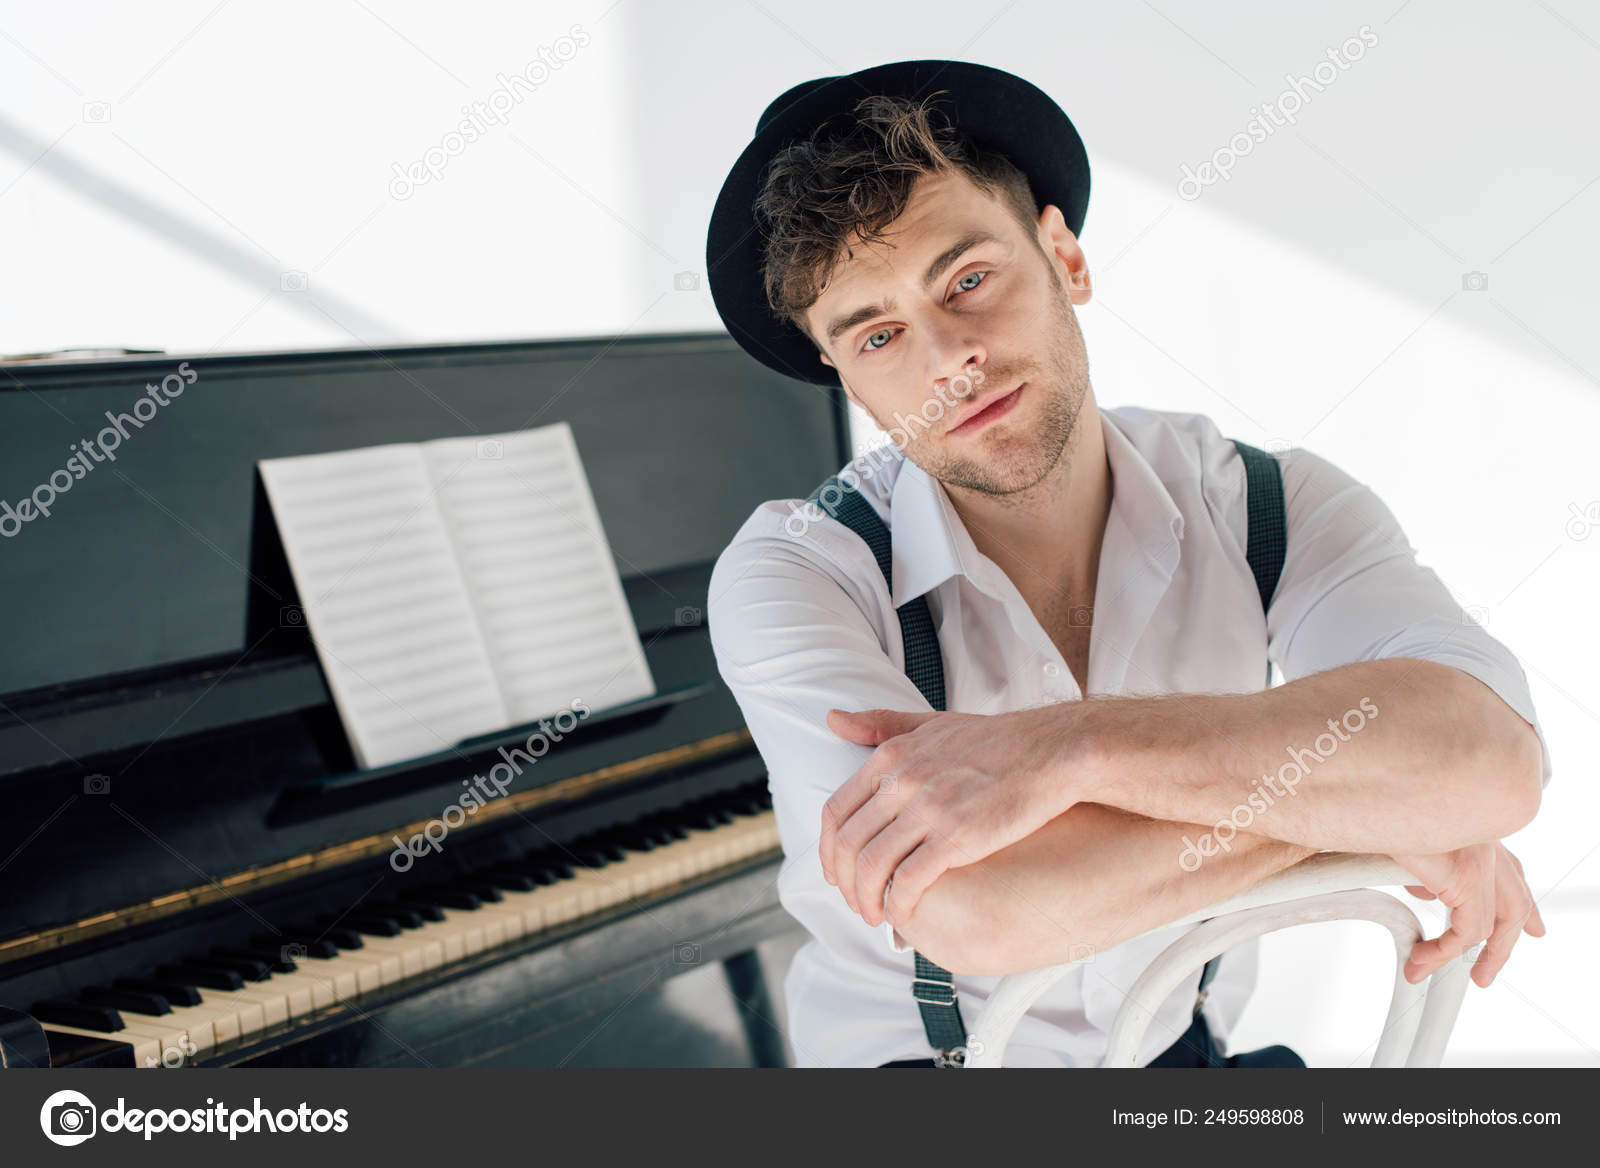 Dreamy Pianist White Shirt Black Hat Looking Camera — Stock Photo